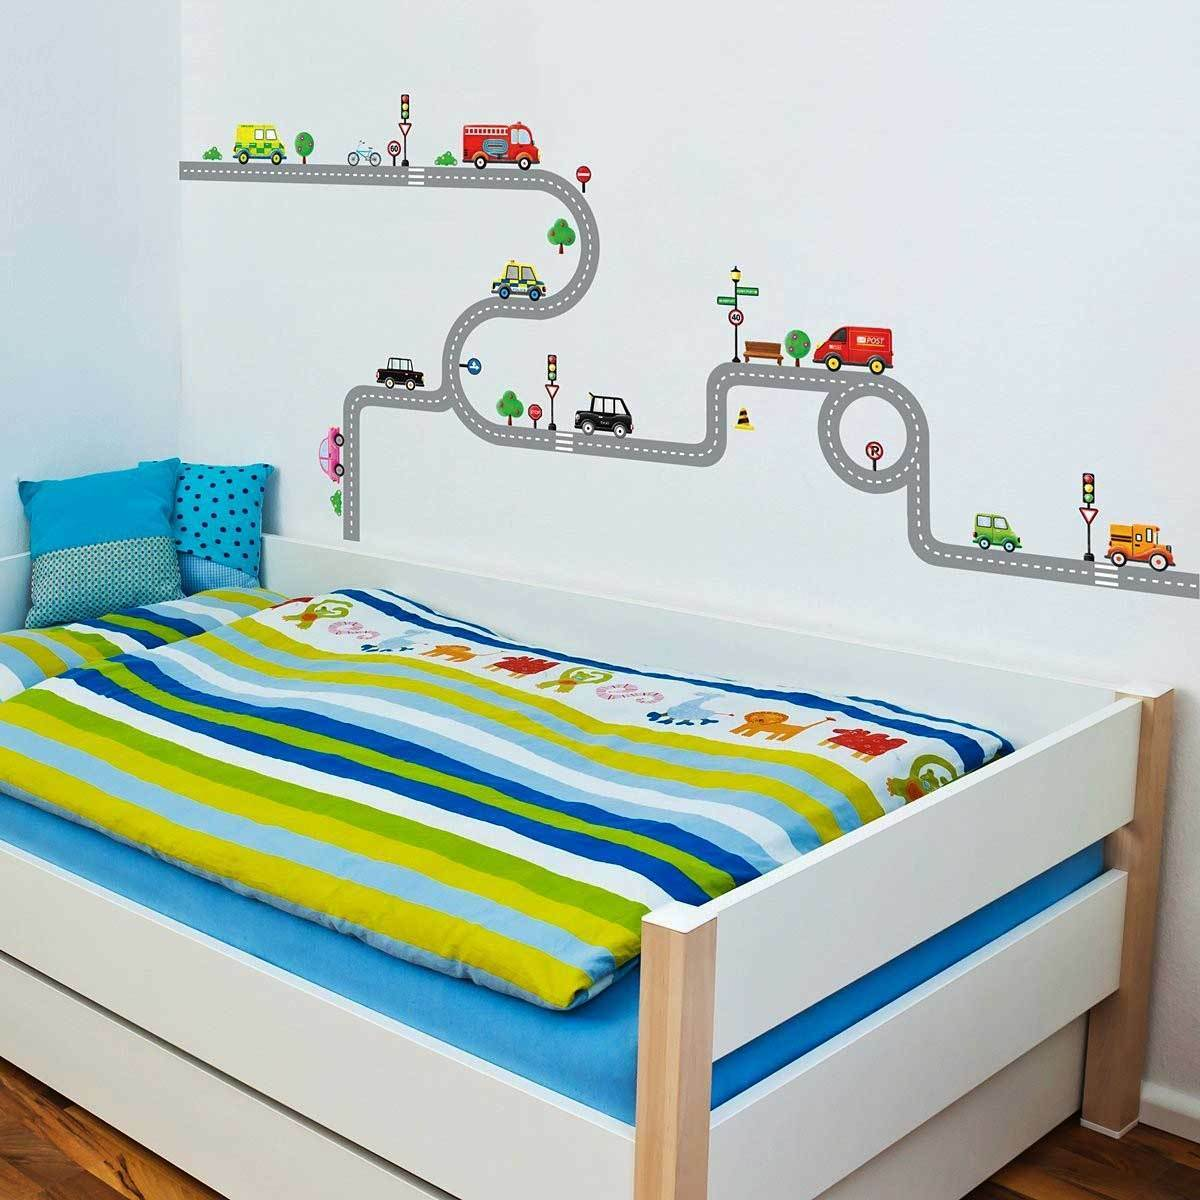 wandsticker wandpuzzle wandtattoo autobahn stra en autos kinderzimmer jungen eur 24 99. Black Bedroom Furniture Sets. Home Design Ideas